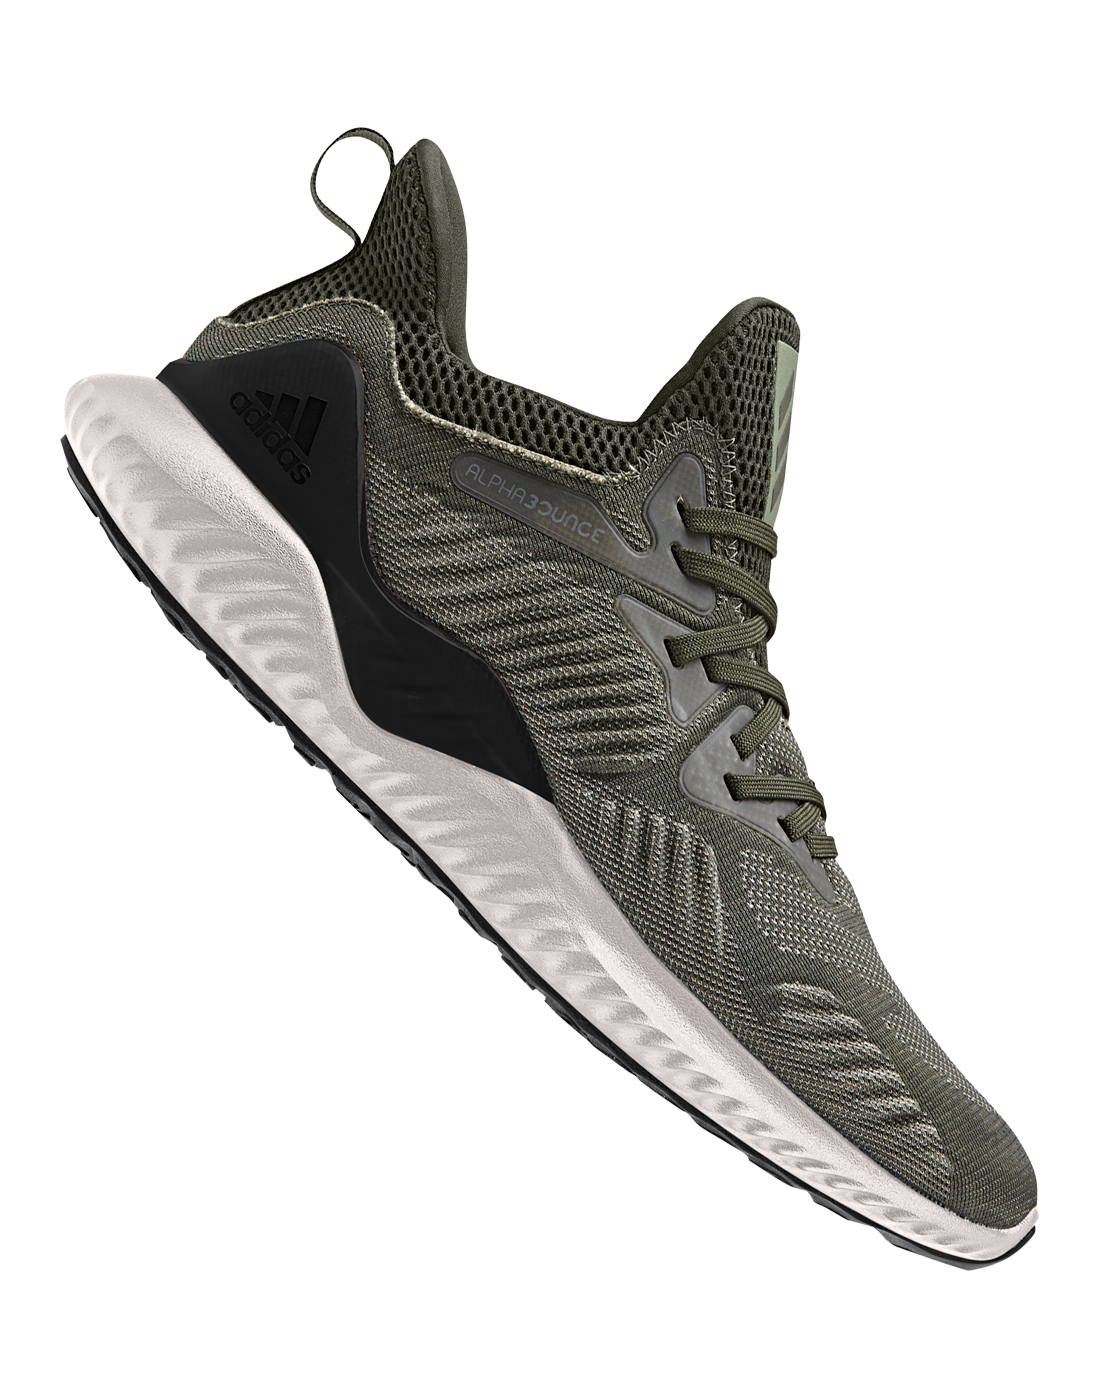 d4fe73a0e5c80 Mens Alphabounce Beyond · Mens Alphabounce Beyond. FOR RUNNING